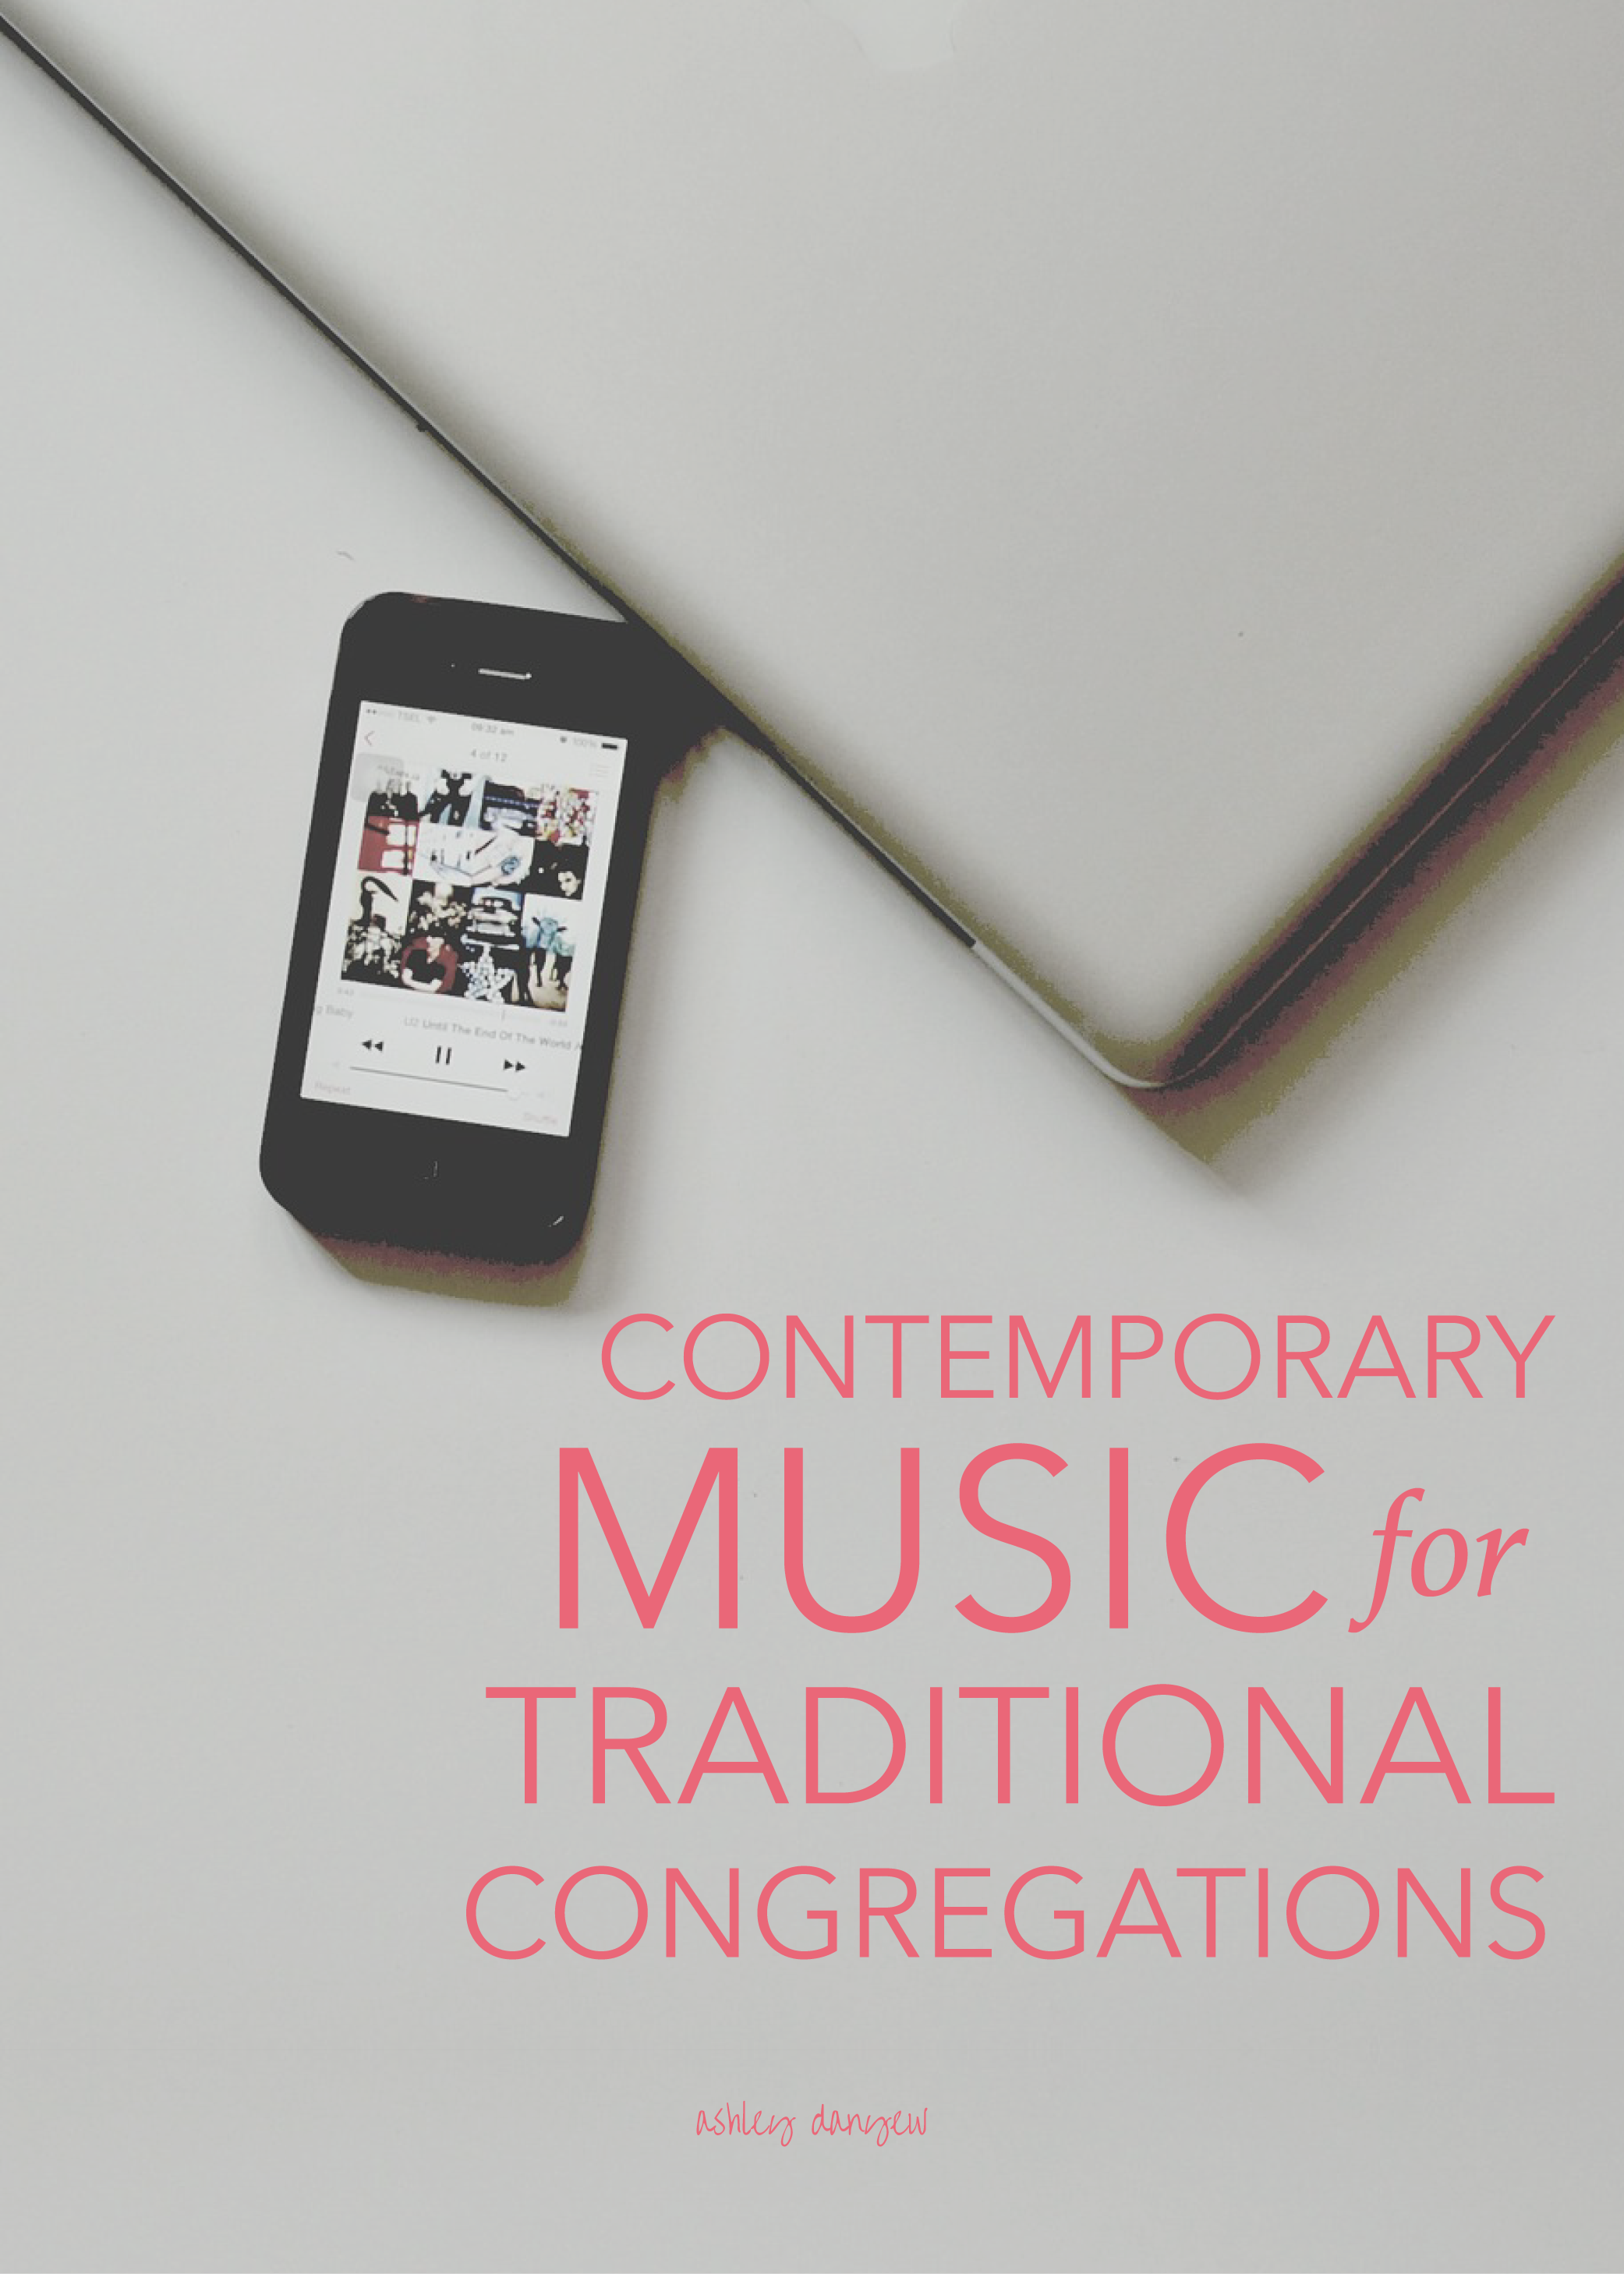 Copy of Contemporary Music for Traditional Congregations